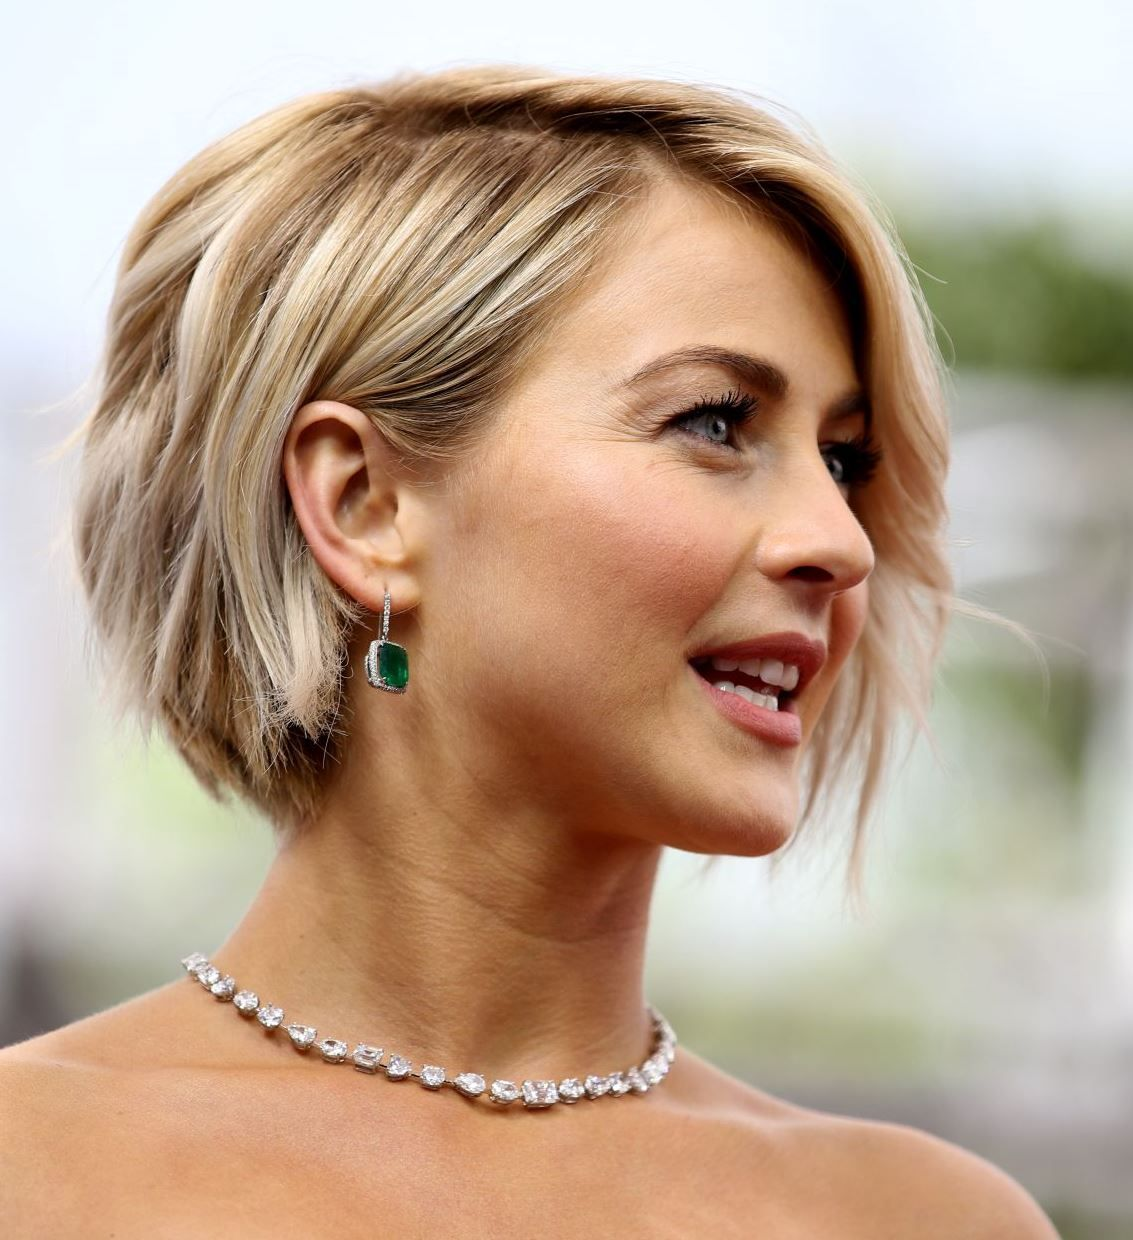 Image Result For Julianne Hough Short Hair Summer 2017 Haircut